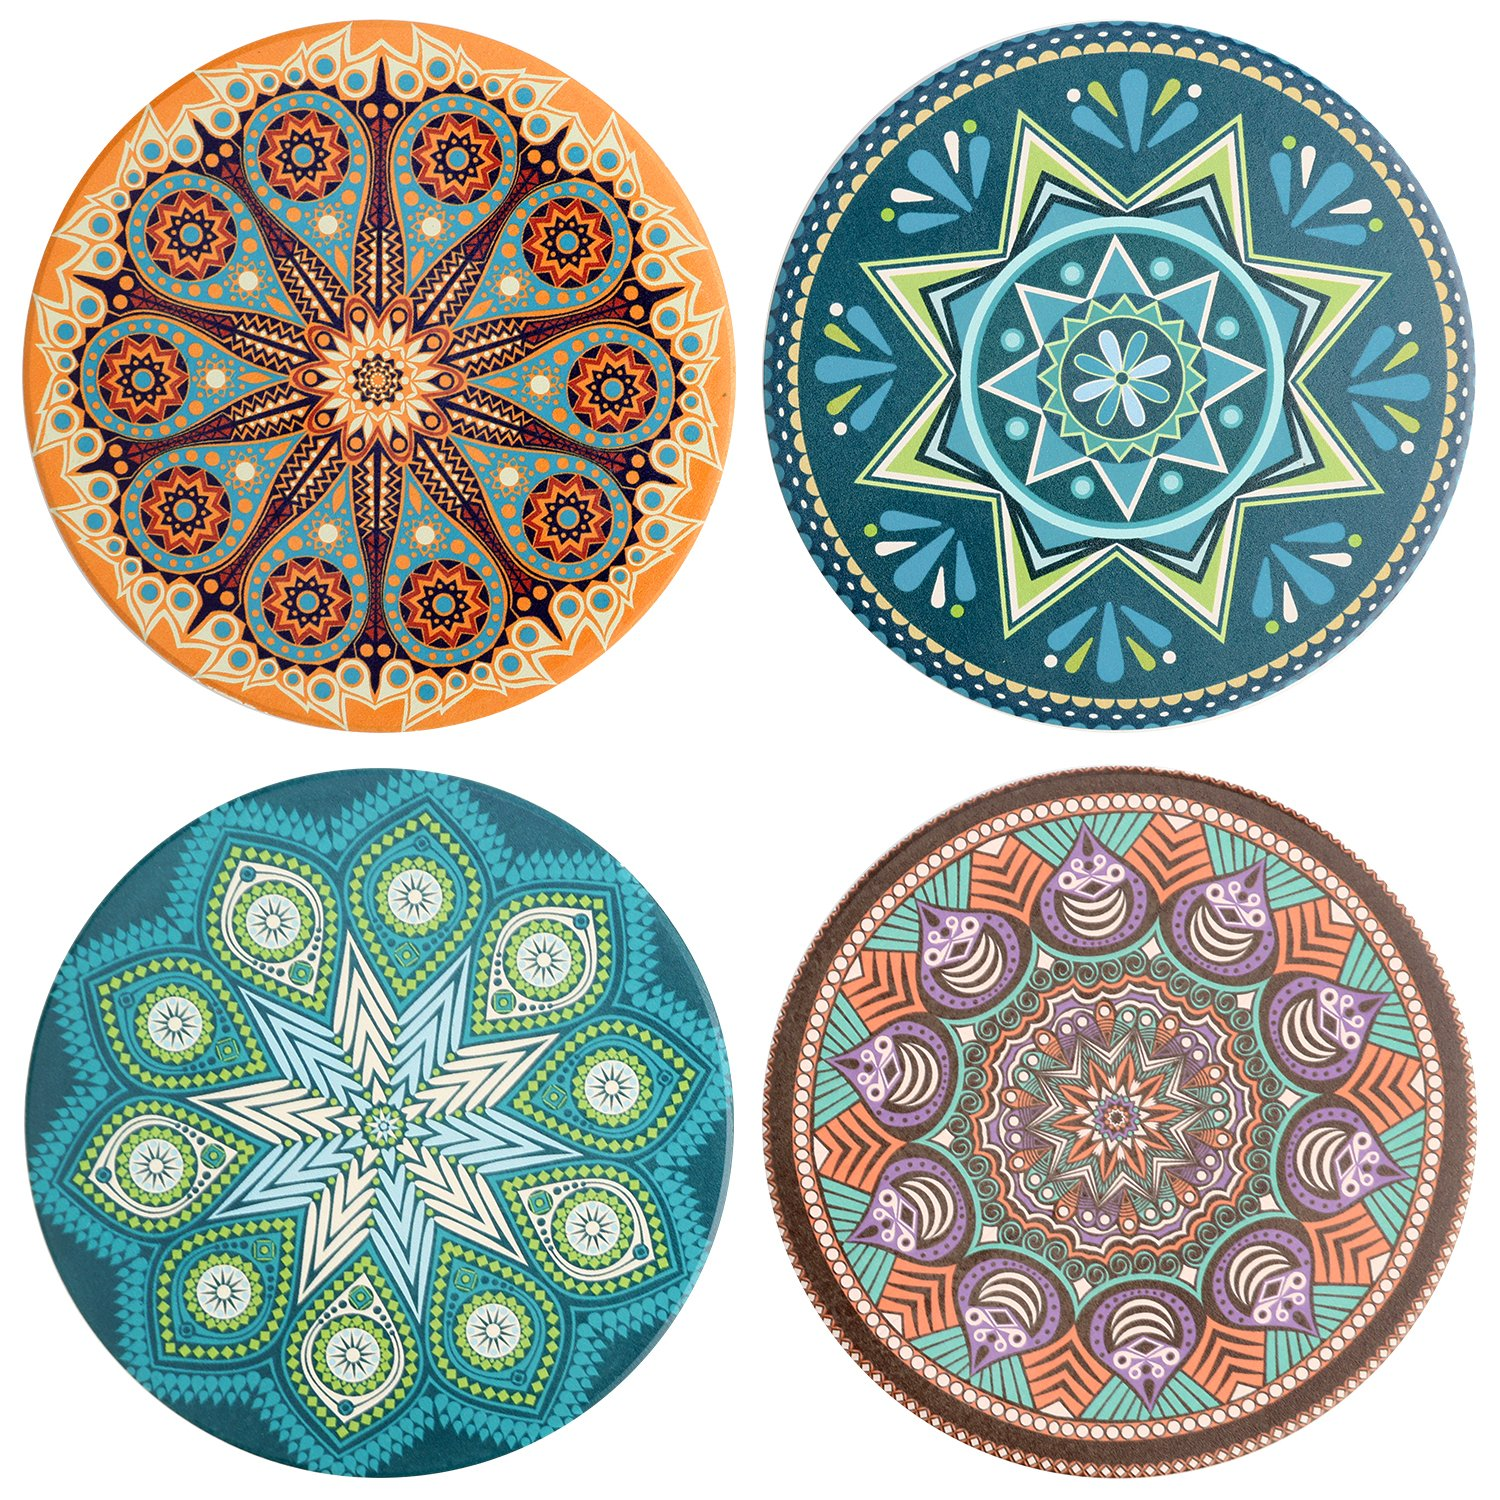 IPHOX Drink Coasters - Absorbent Stone Coasters Set with Cork Base, Avoid Scratching Furniture, Suitable for Kinds of Mugs and Cups, 4 Pack (Bohemia Style #1)